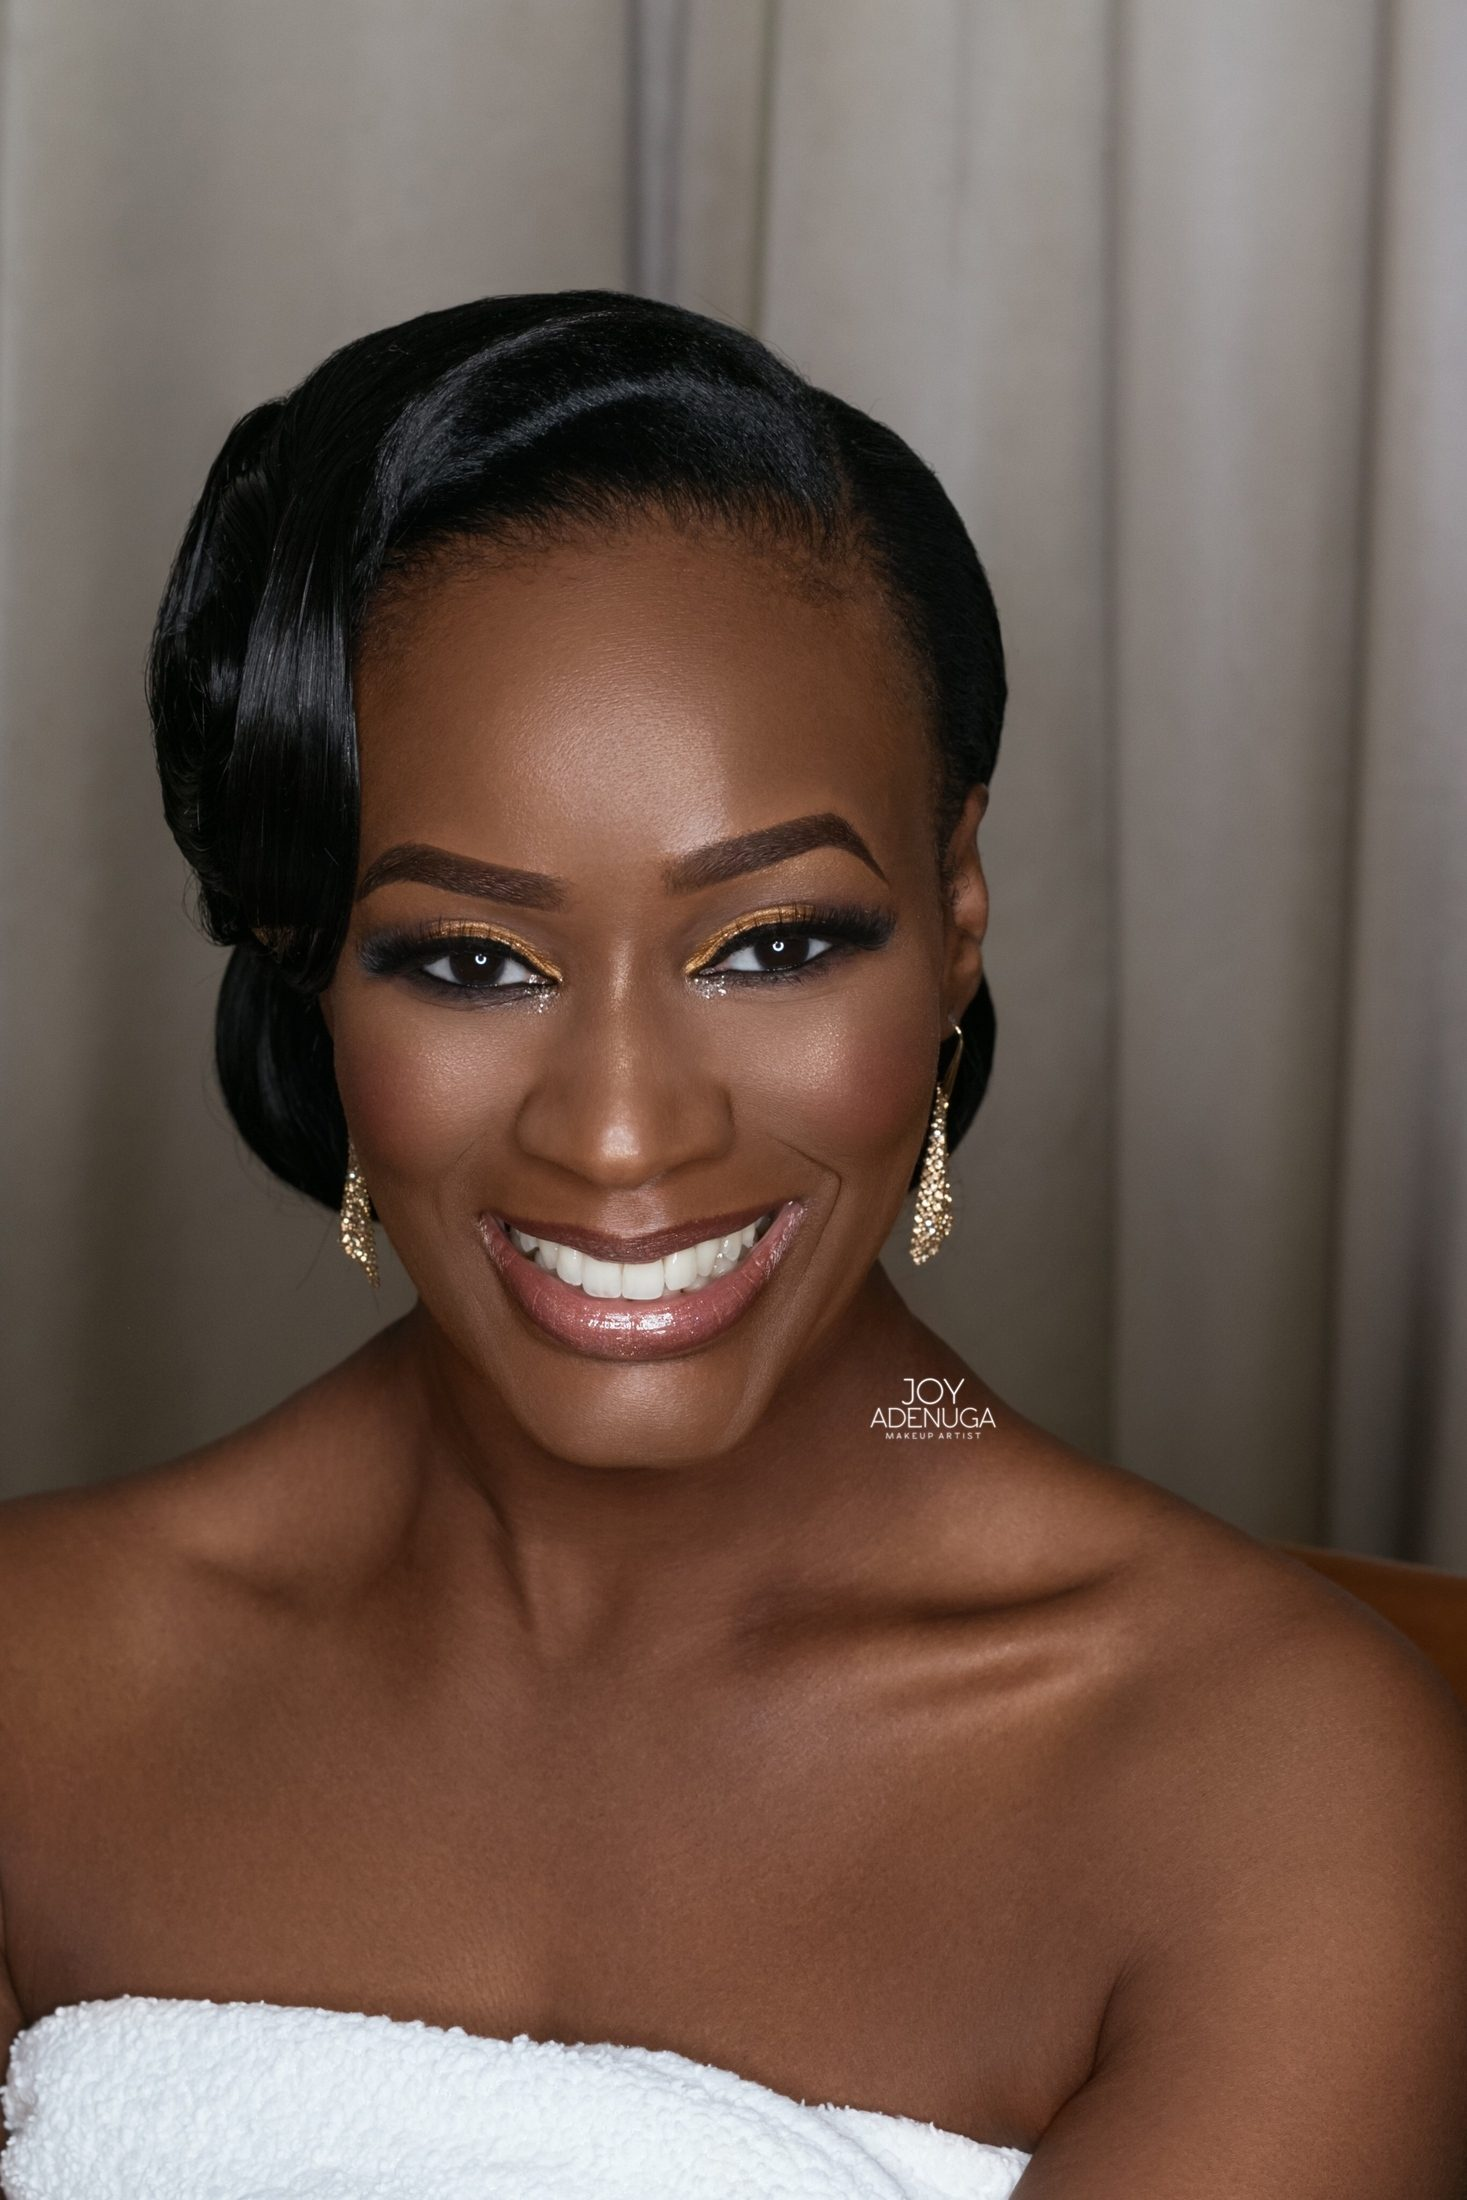 Ghanian bride, joy adenuga, black bride, black bridal blog london, london black makeup artist, london makeup artist for black skin, black bridal makeup artist london, makeup artist for black skin, nigerian makeup artist london, makeup artist for women of colour, working with Beverley